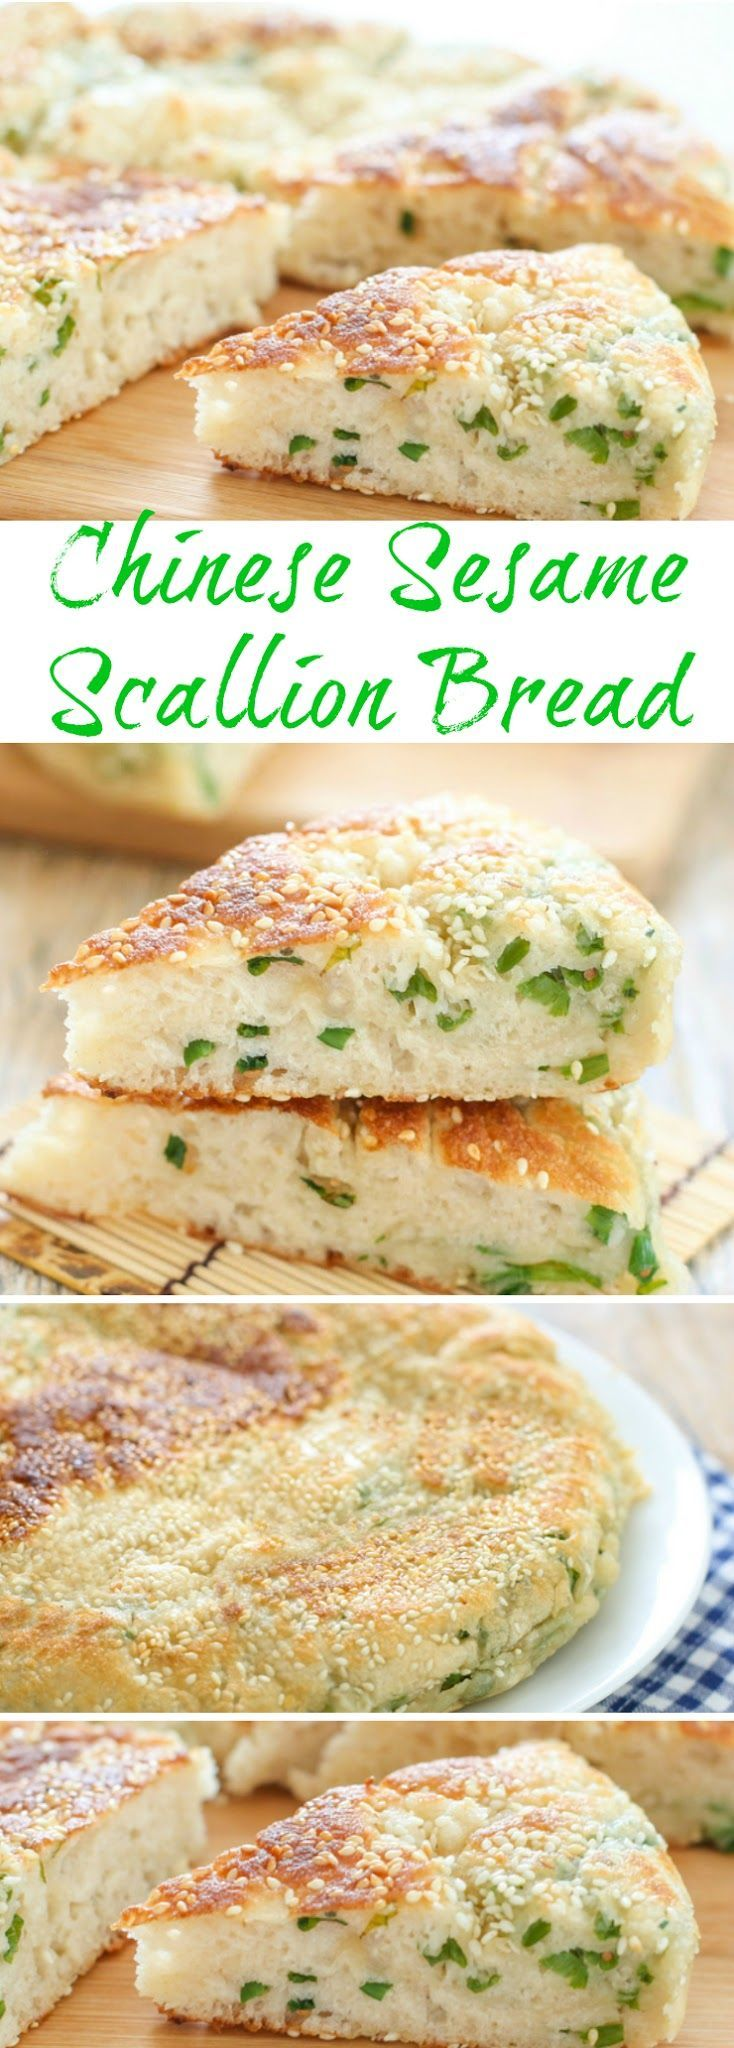 Sesame Bread with Scallions Chinese Sesame Scallion Bread. Includes step by step photos!Chinese Sesame Scallion Bread. Includes step by step photos!